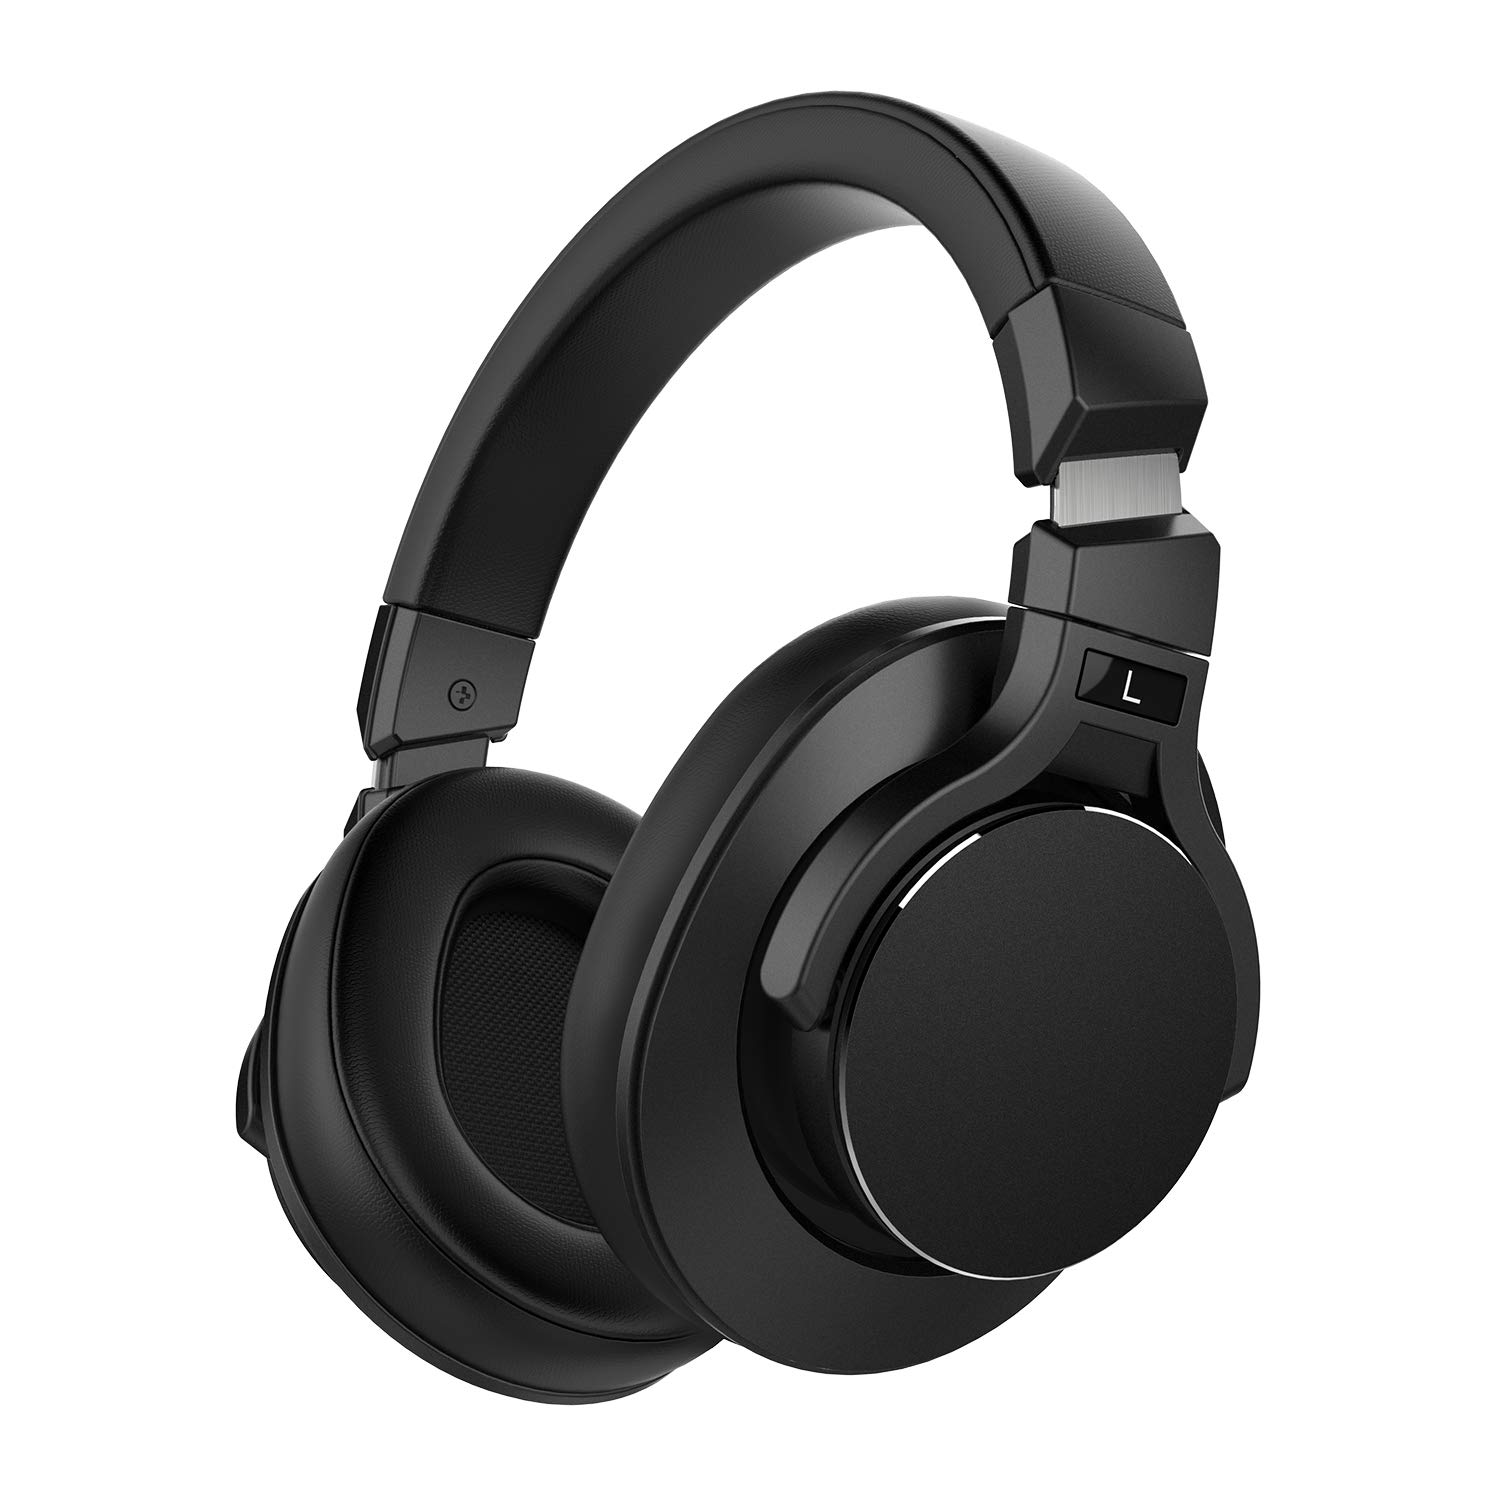 Mixcder E8 Active Noise Cancelling Headphones, Wireless Bluetooth Headphones Over Ear with Microphone, Stereo Sound, Deep Bass, Portable Design, 20H Playtime for Travel, TV, PC, Phones – Black